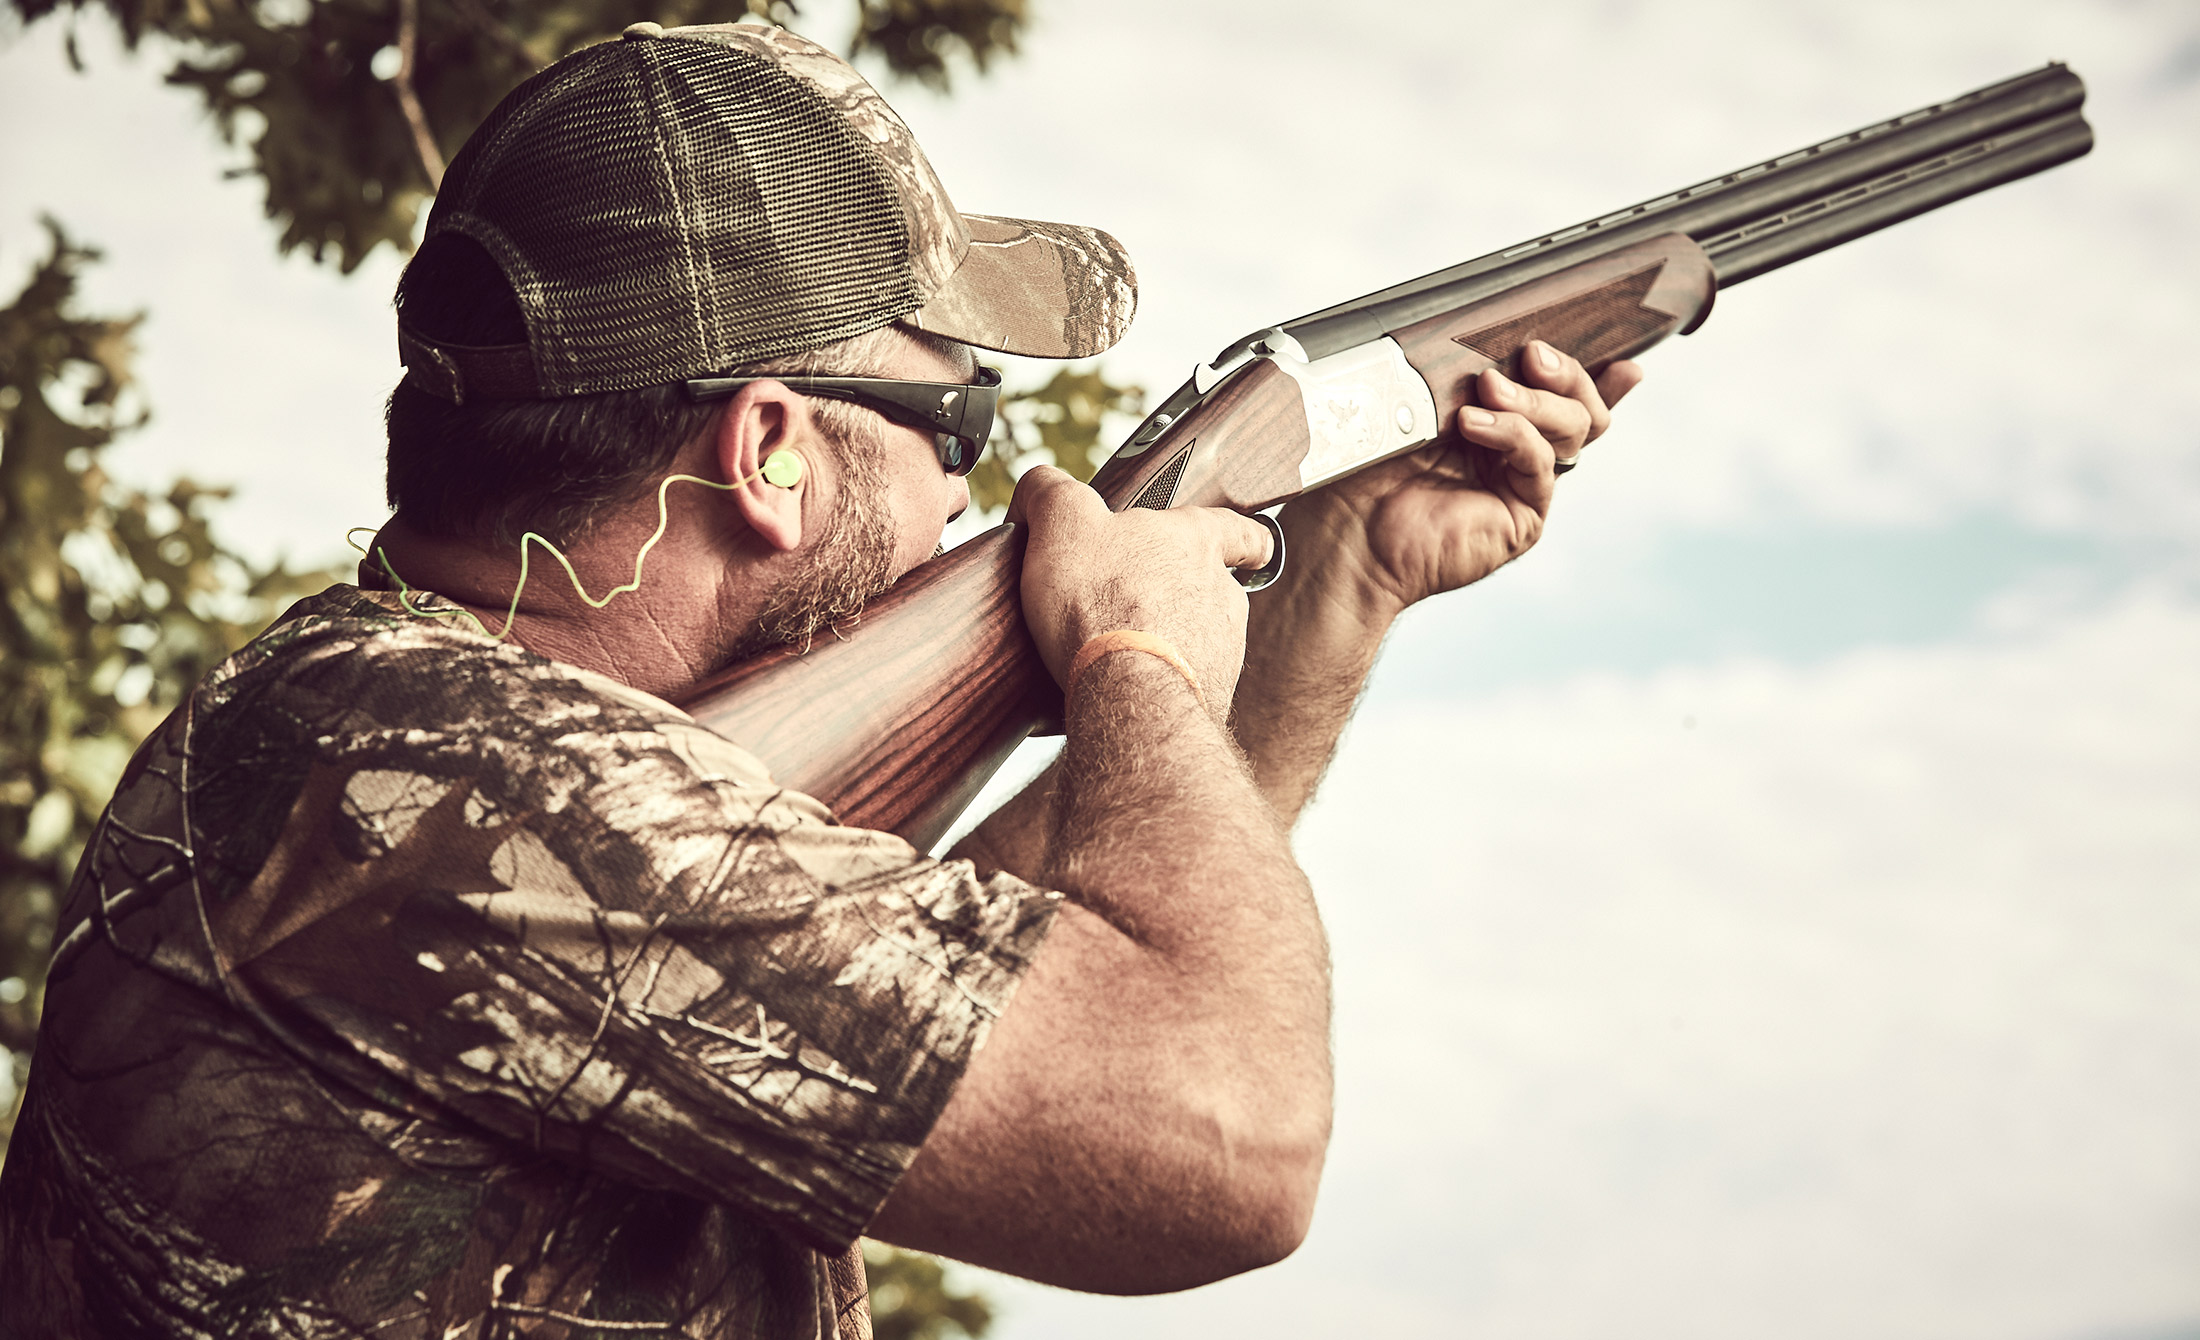 Academy-Sports---Dove-Hunting-10907